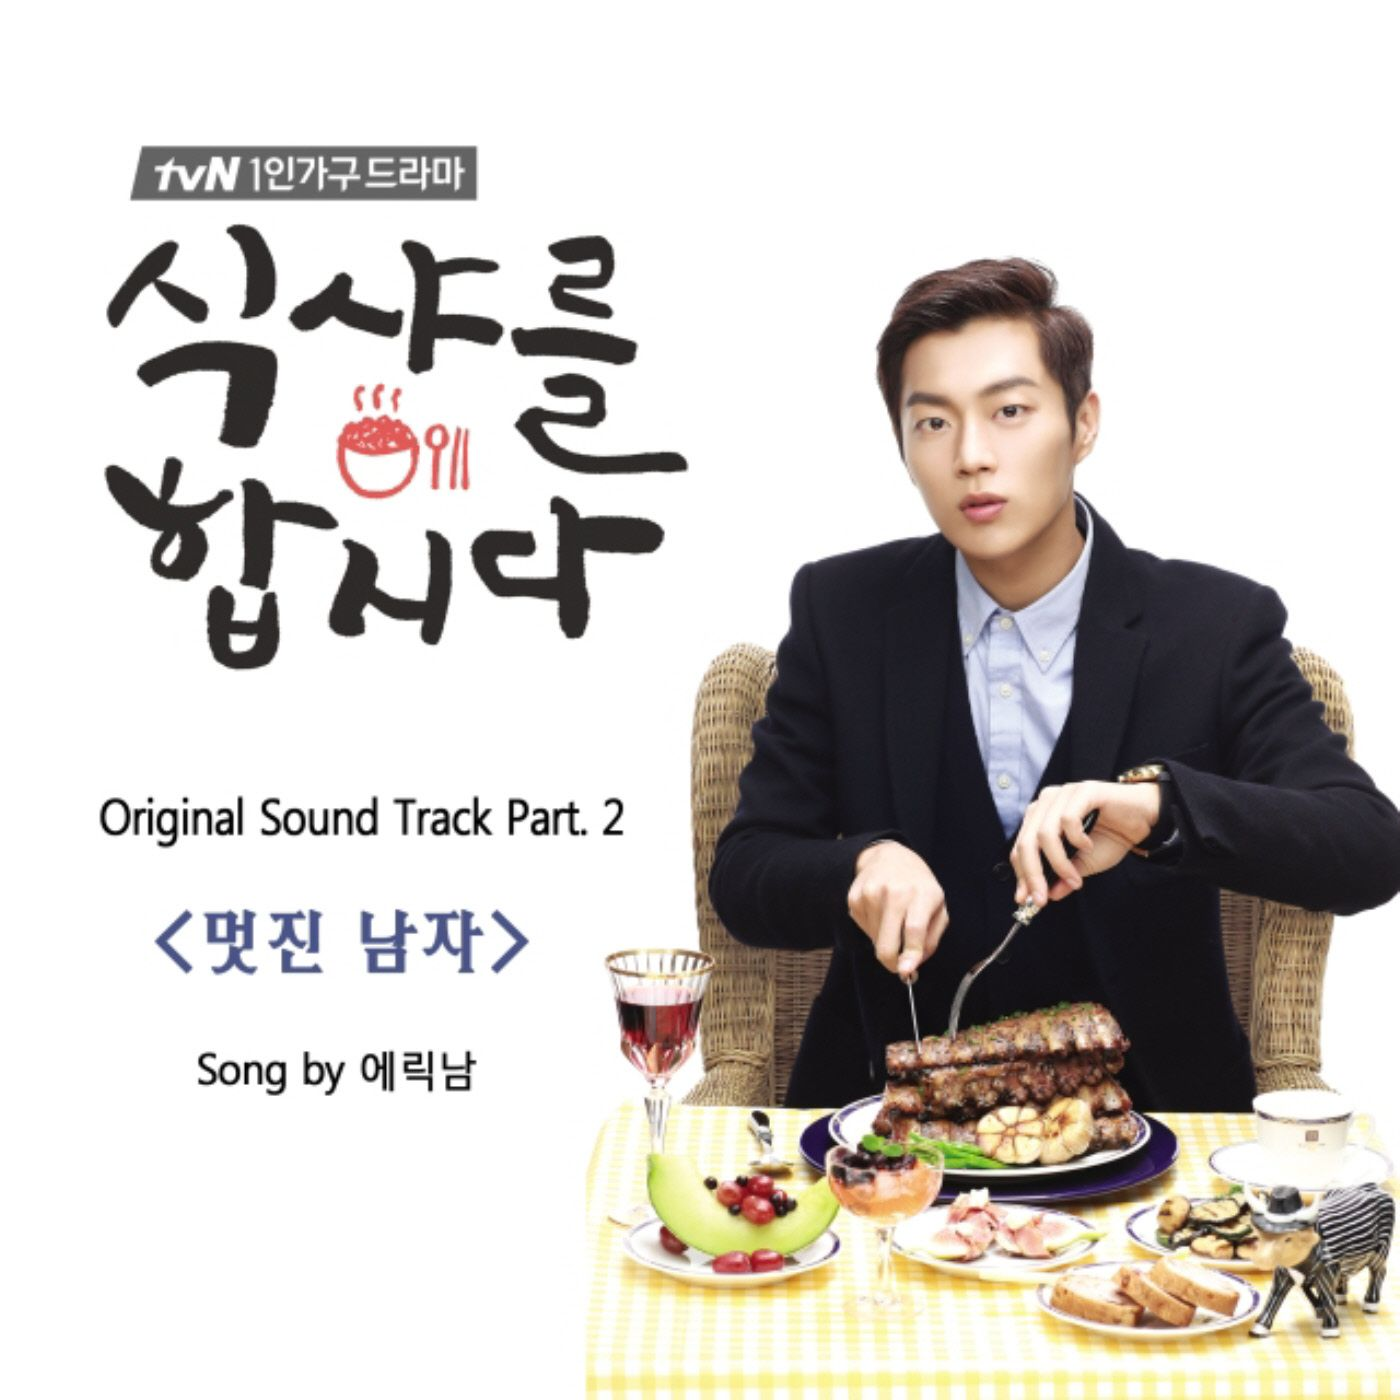 [Single] Eric Nam - Let's Eat OST Part.2